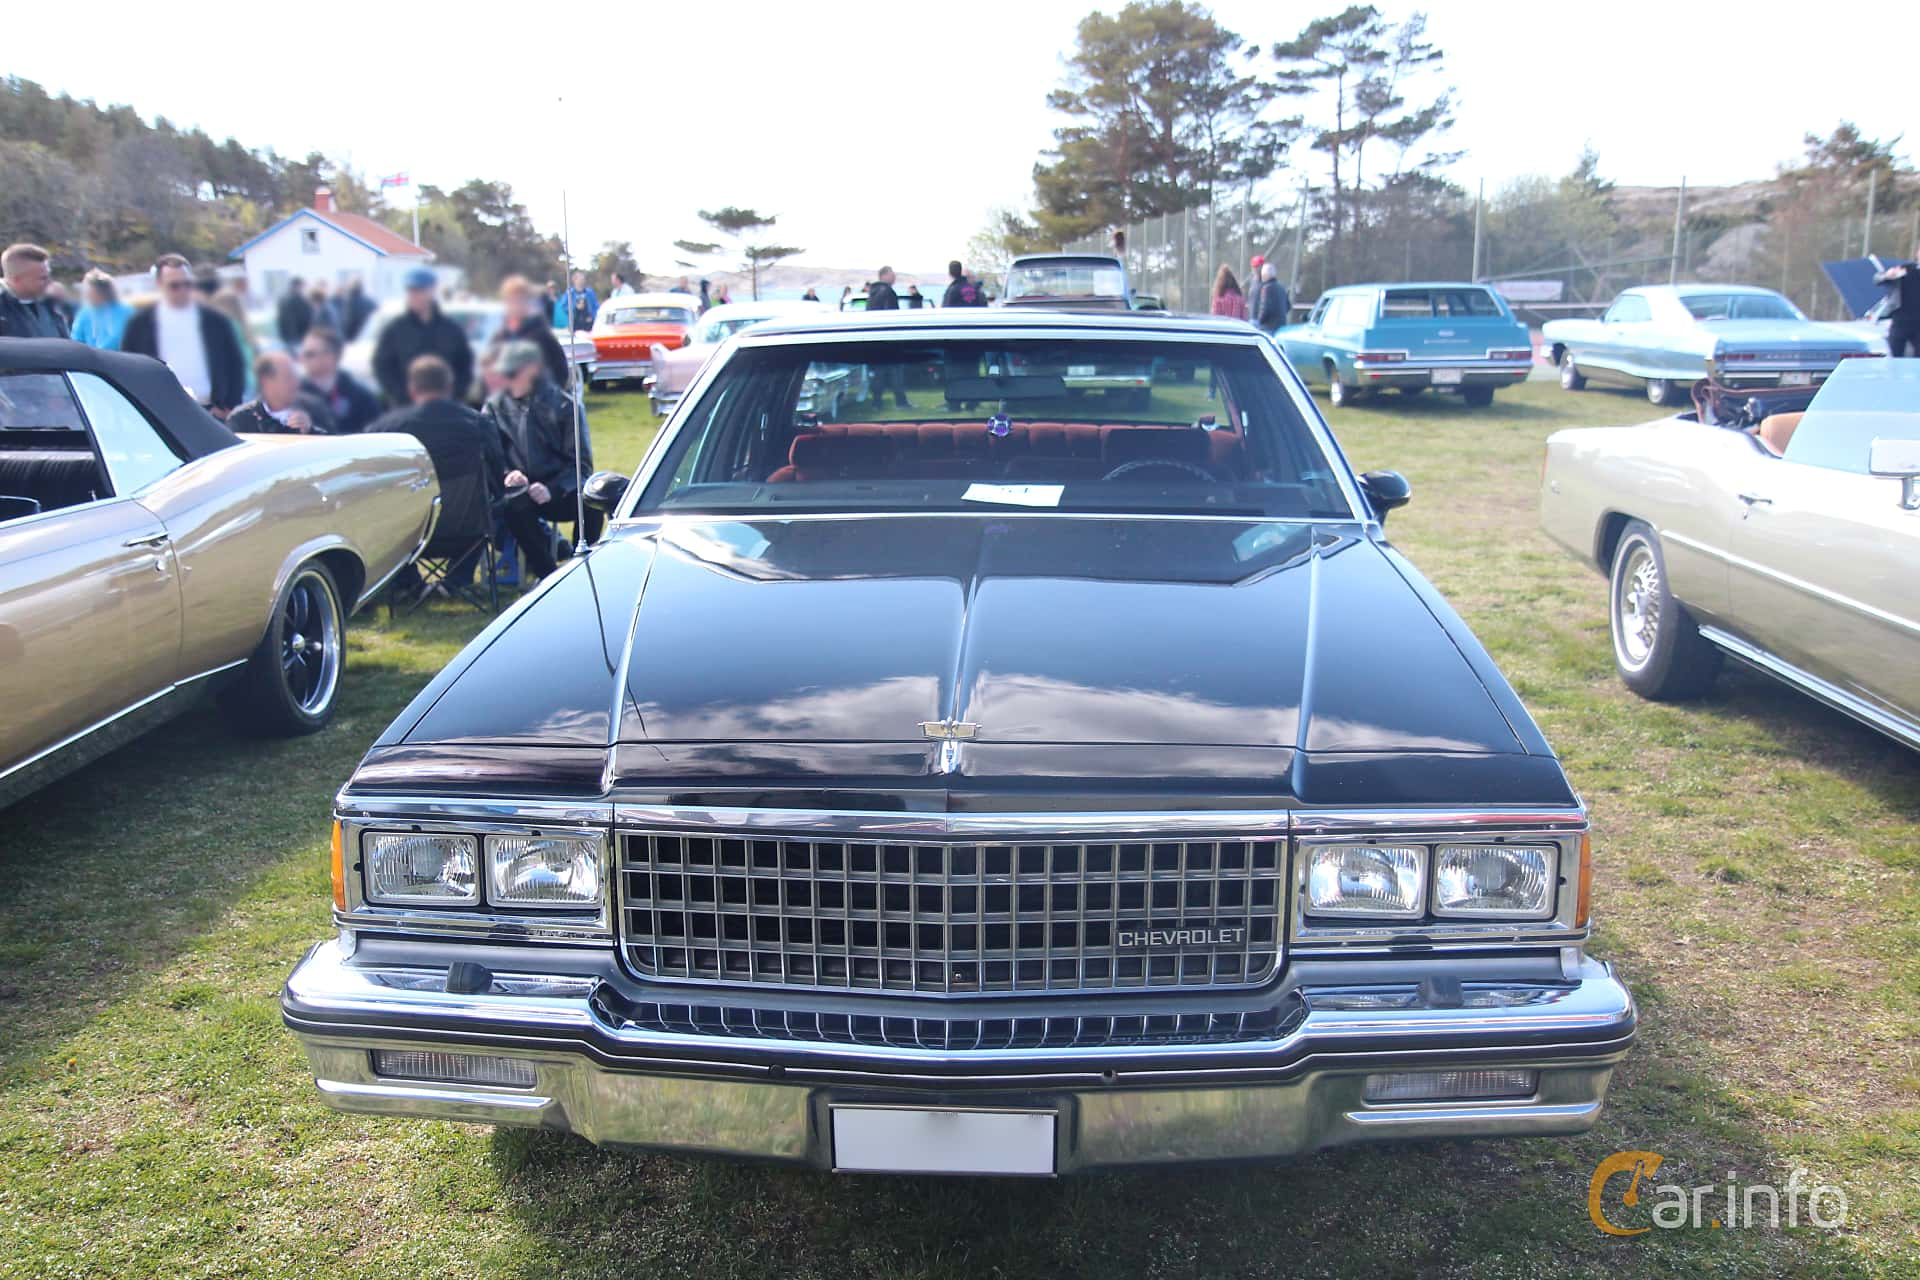 2 images of Chevrolet Caprice Sedan 5 0 V8 Automatic, 157hp, 1980 by